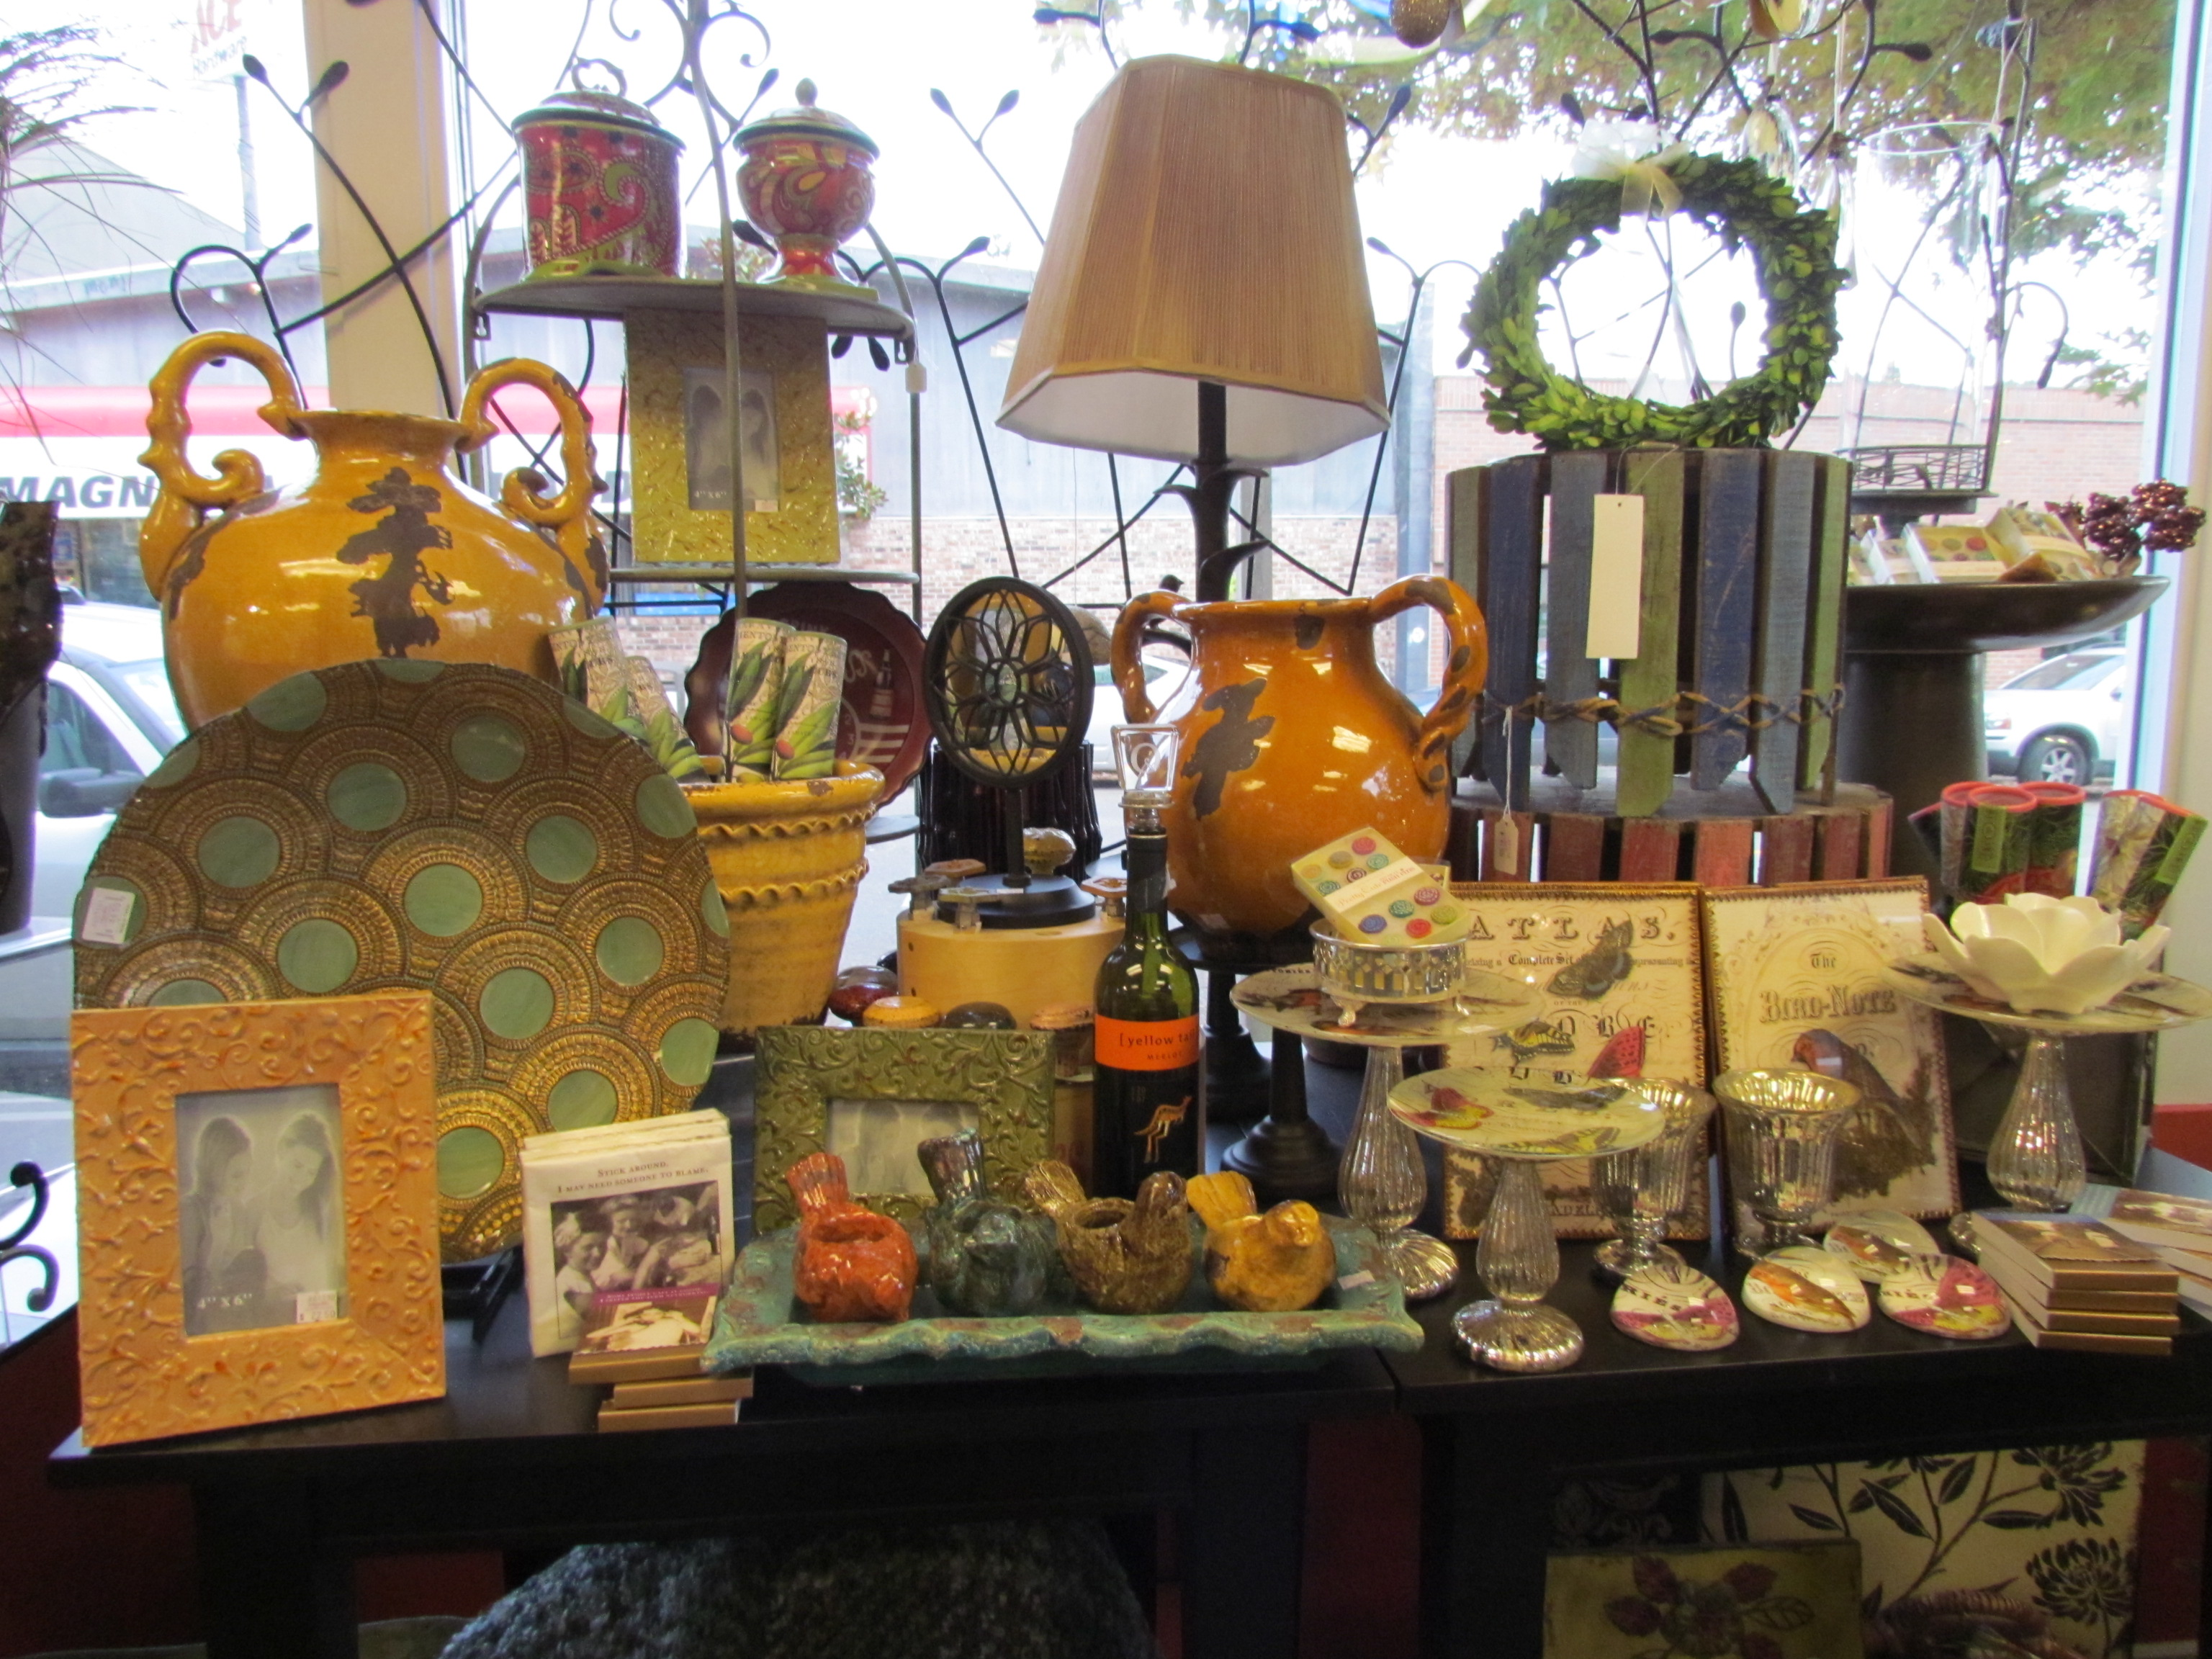 Magnolia Garden Center, Seattle\'s Coolest Plants and Gifts